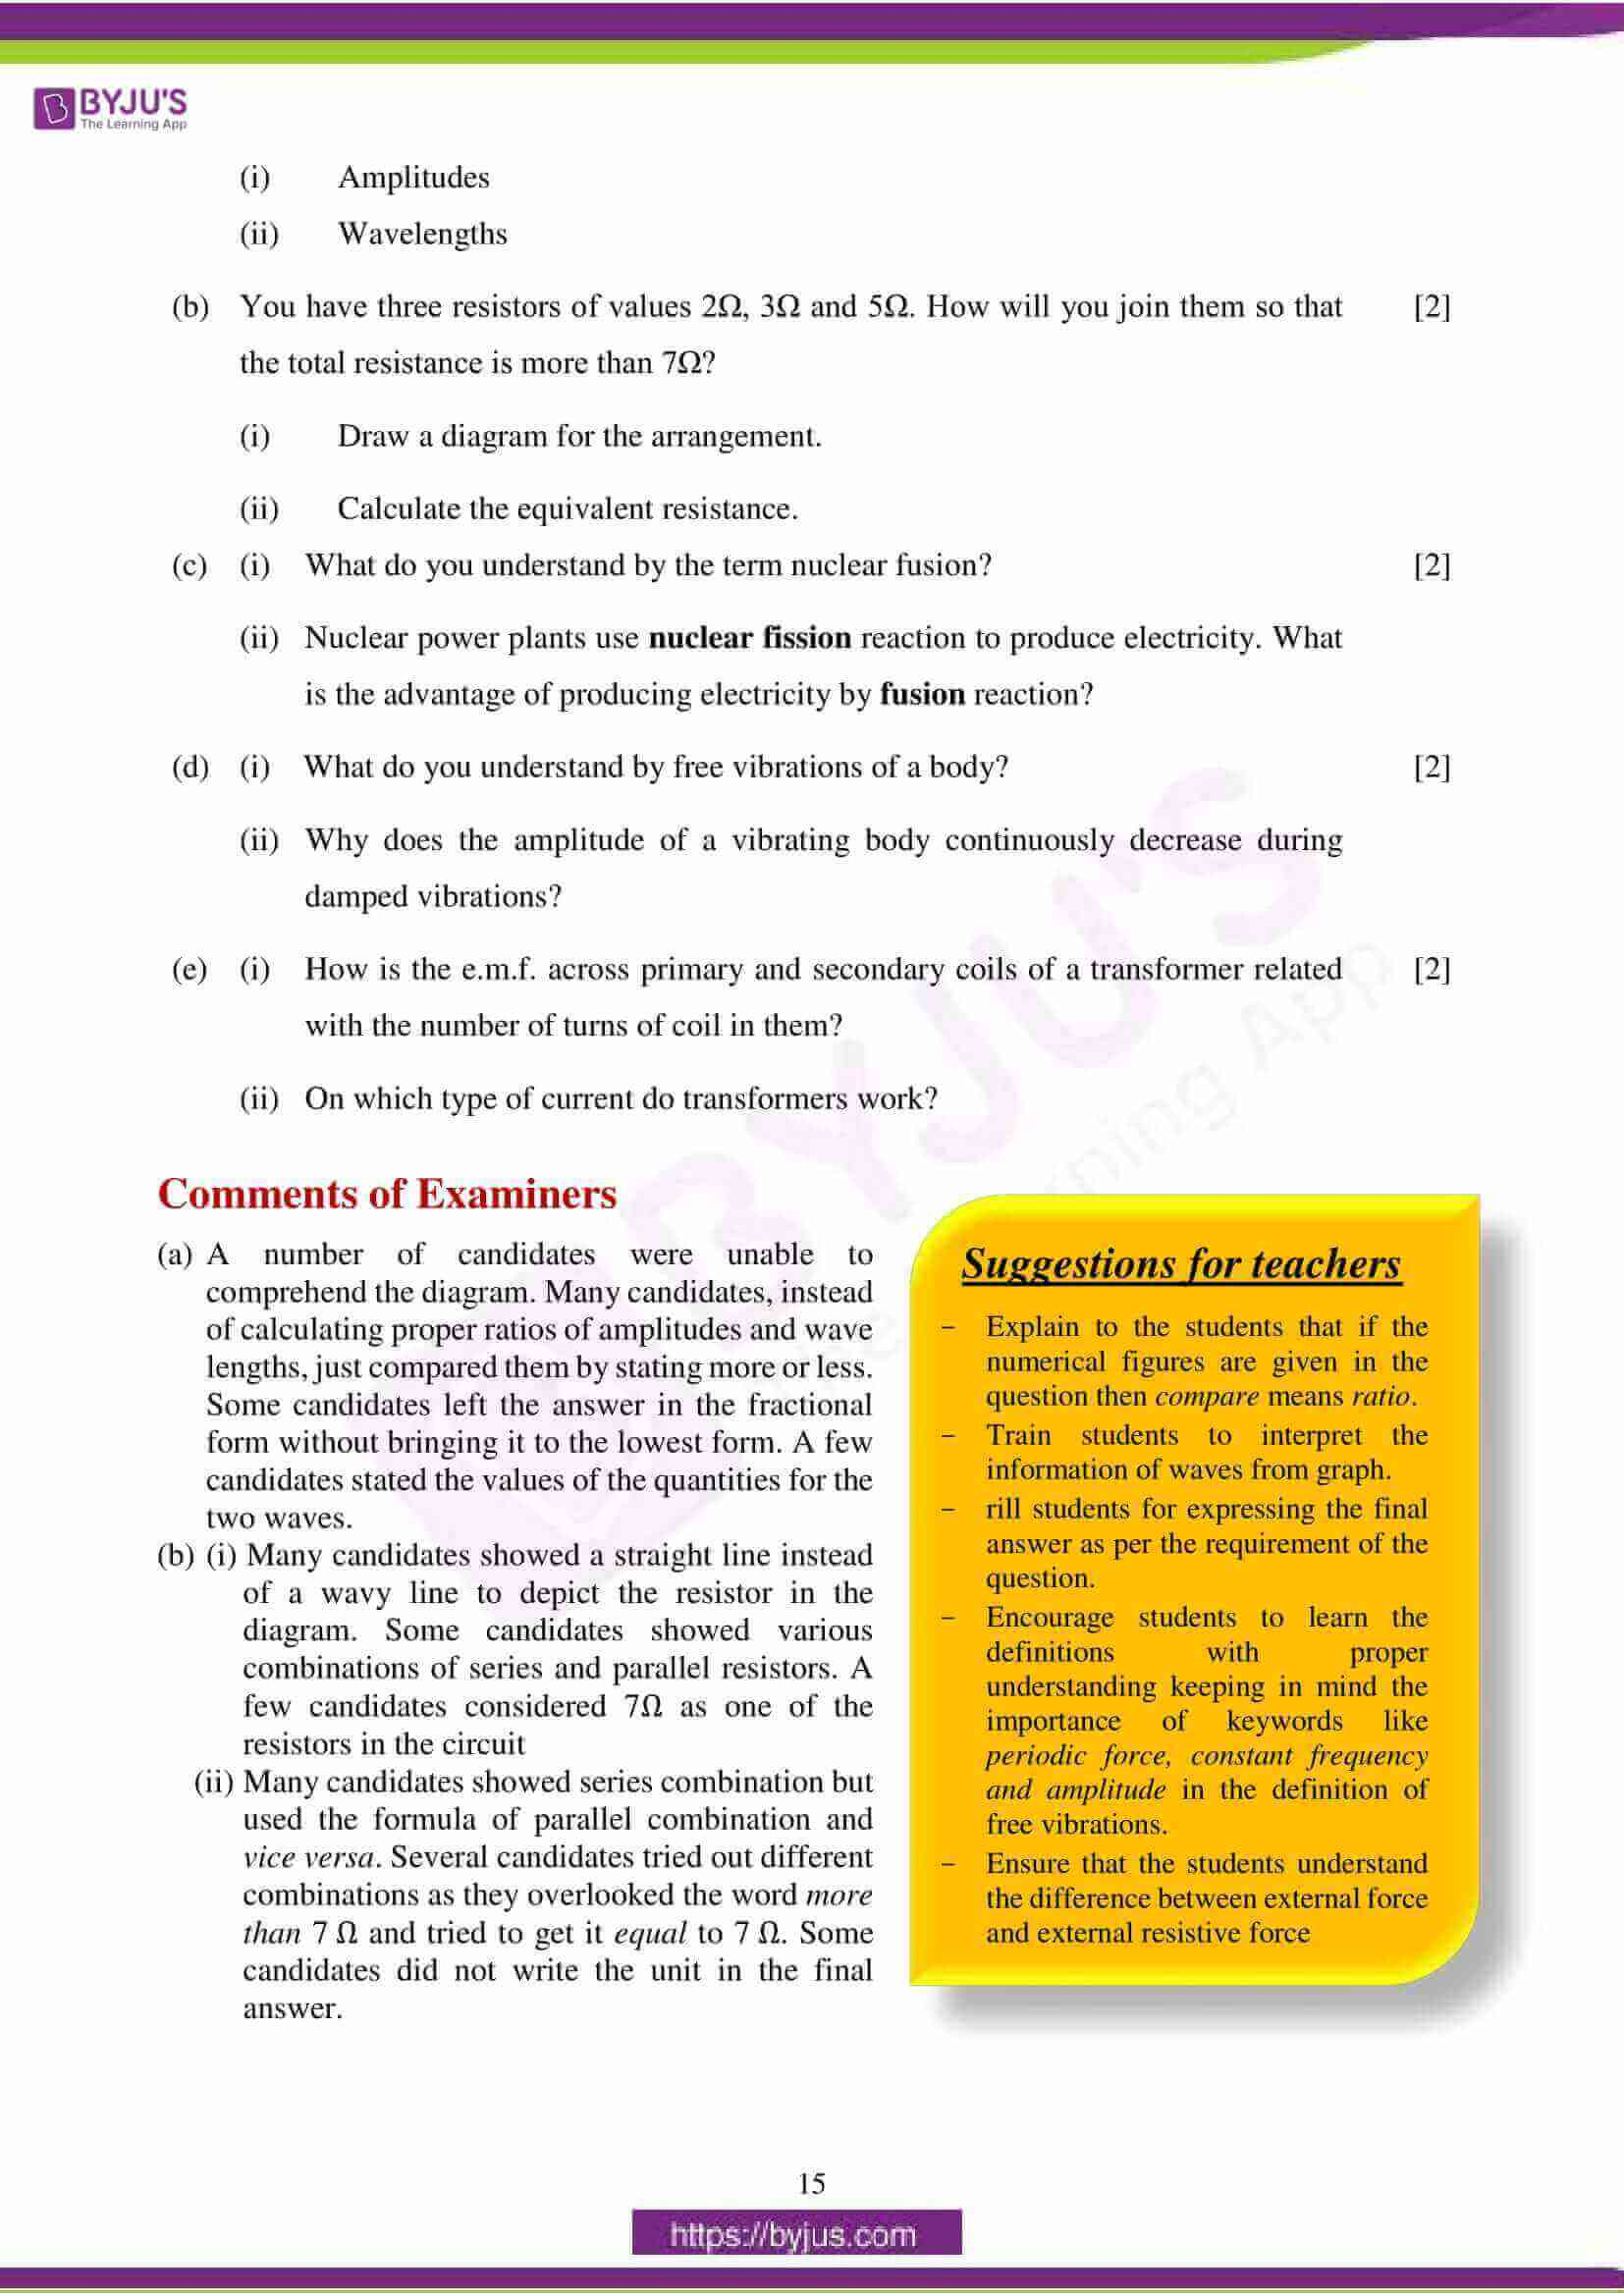 icse class 10 physics question paper solution 2018 06